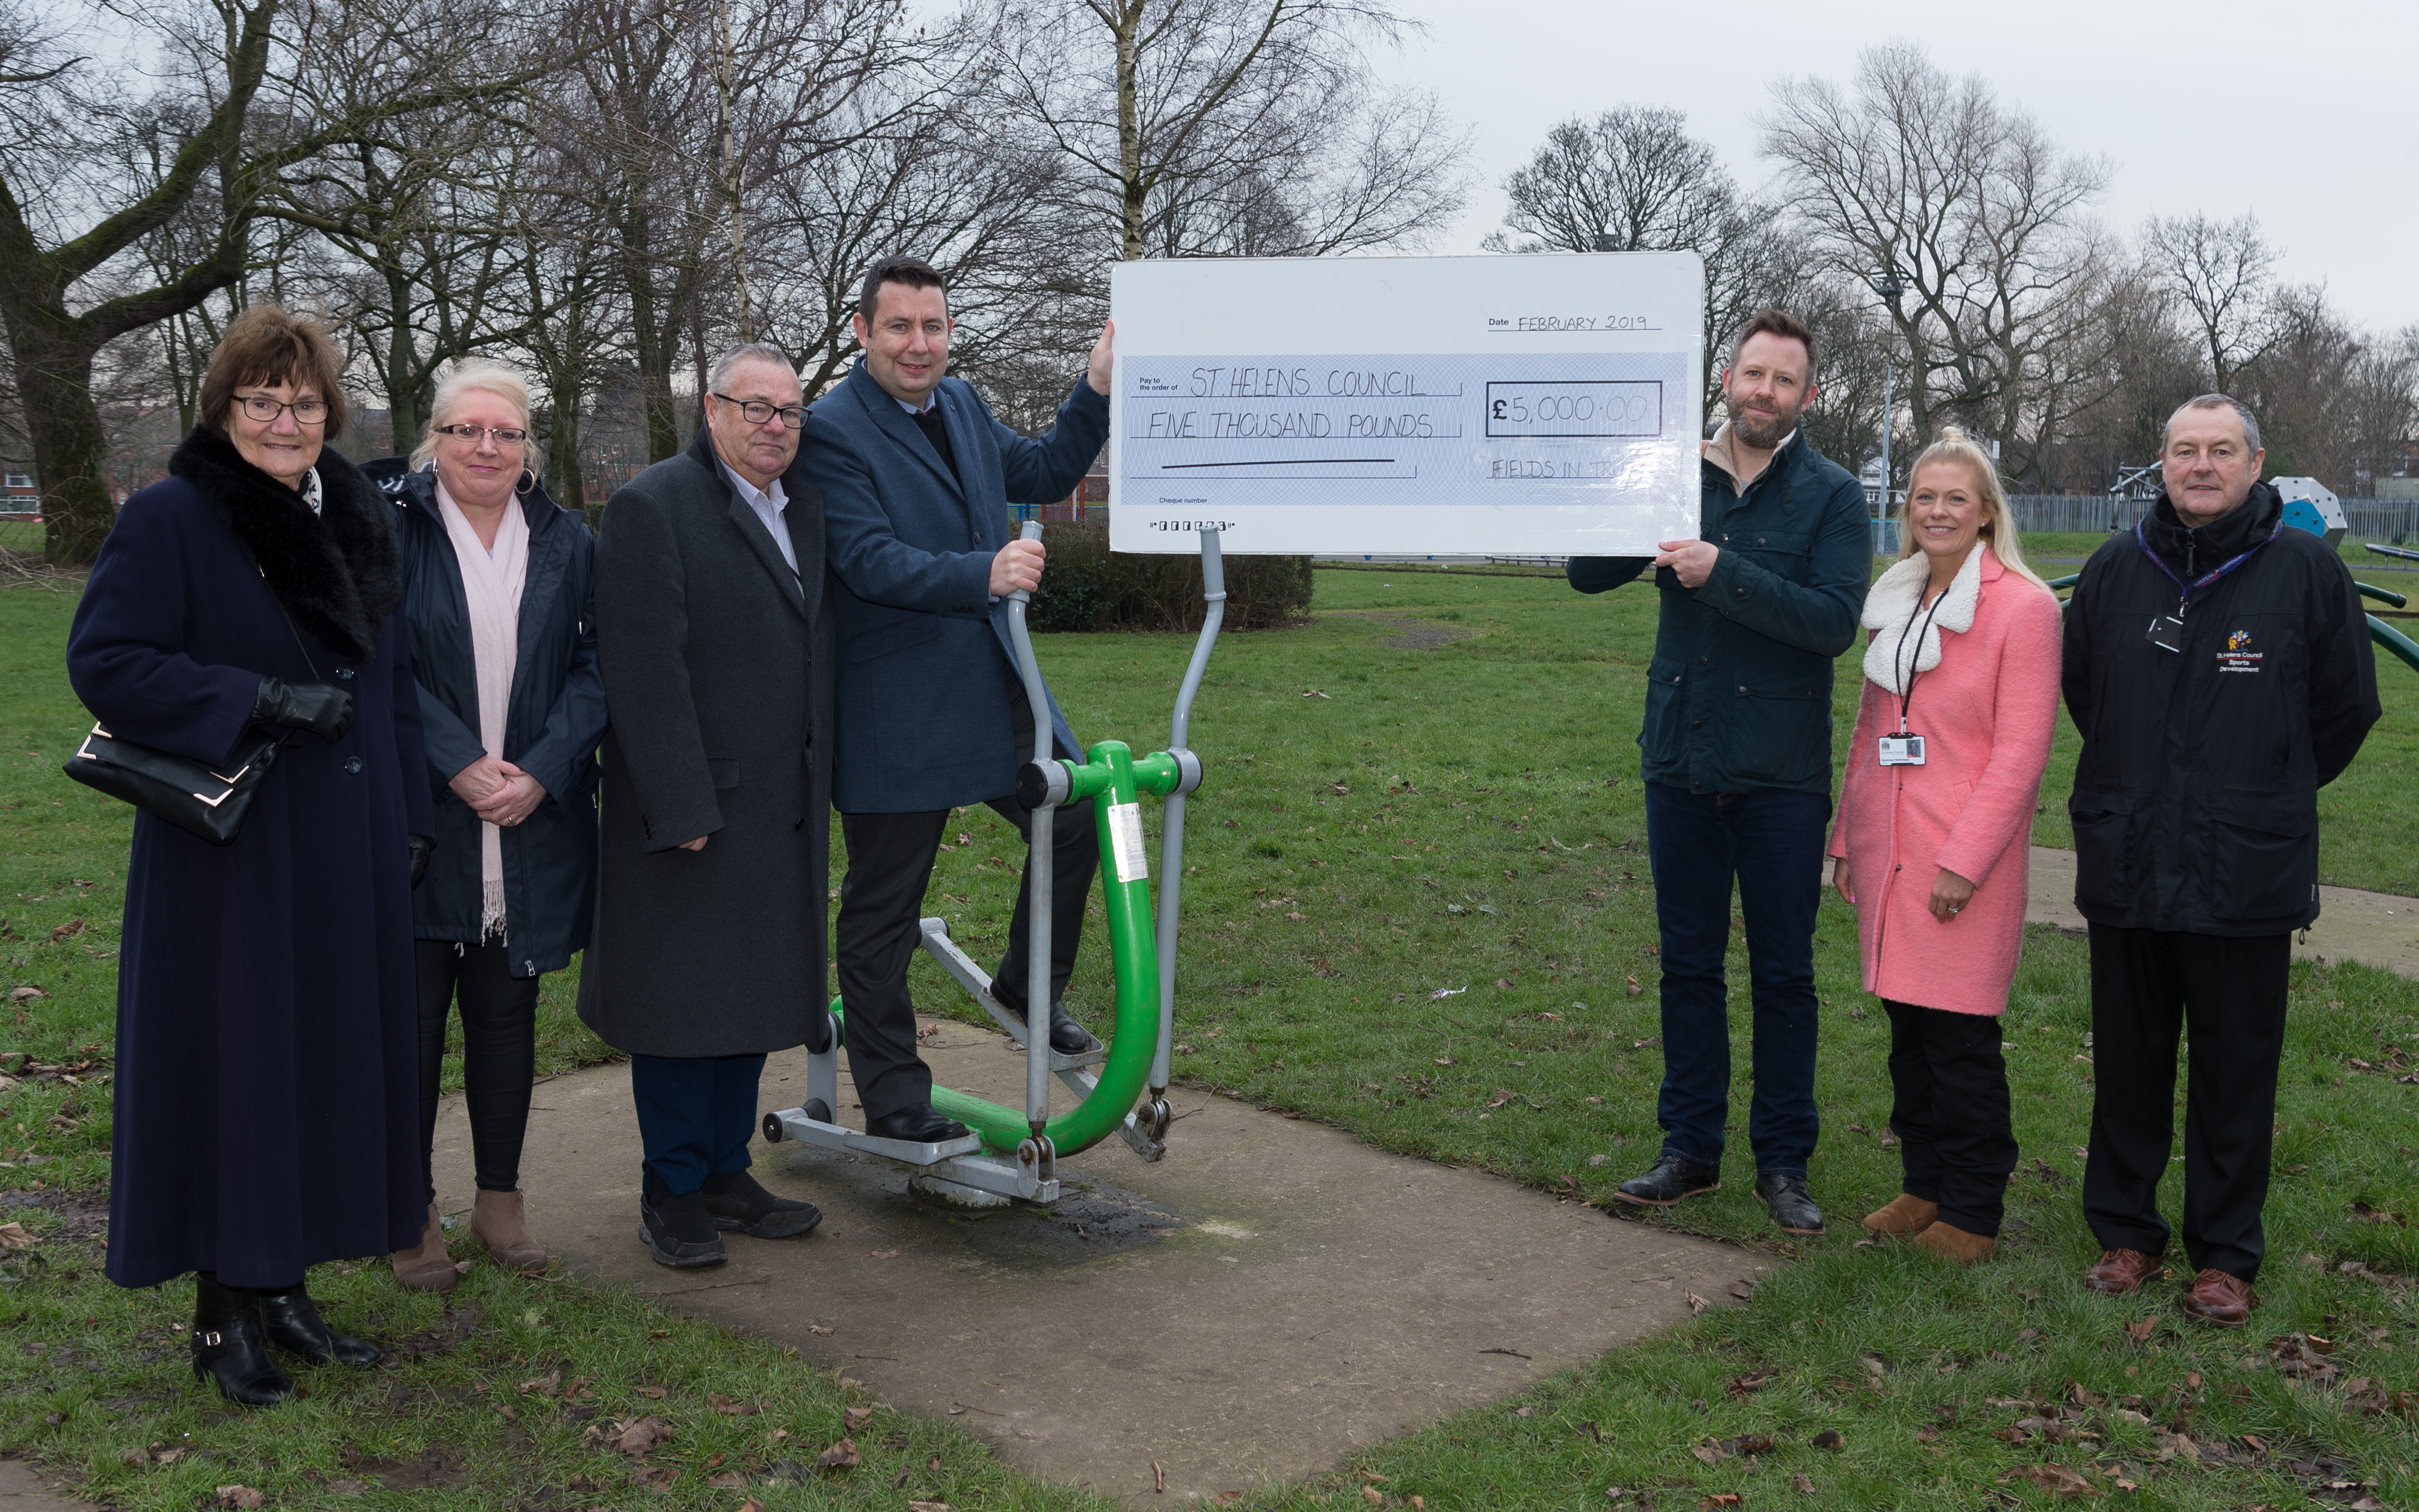 , Funding secured to help people get active in borough's green spaces, Skem News - The Top Source for Skelmersdale News